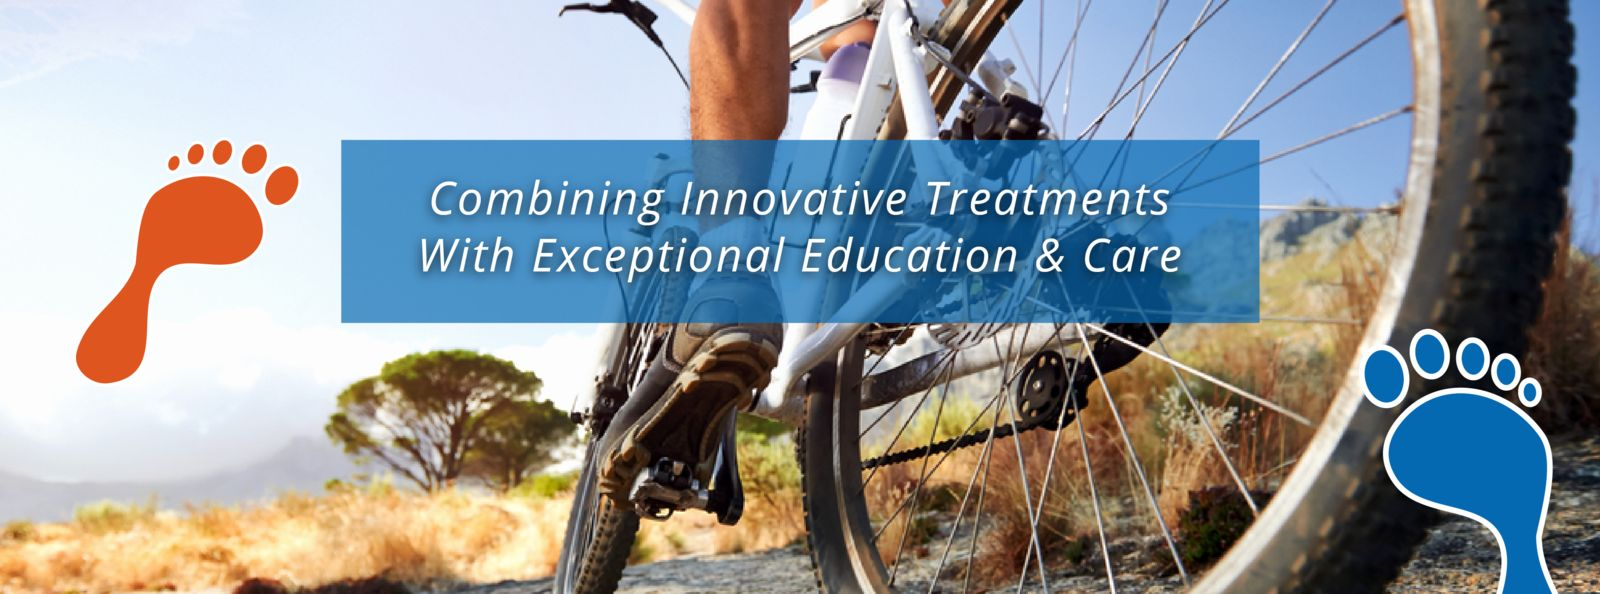 Innovative Treatments, Exceptional Care